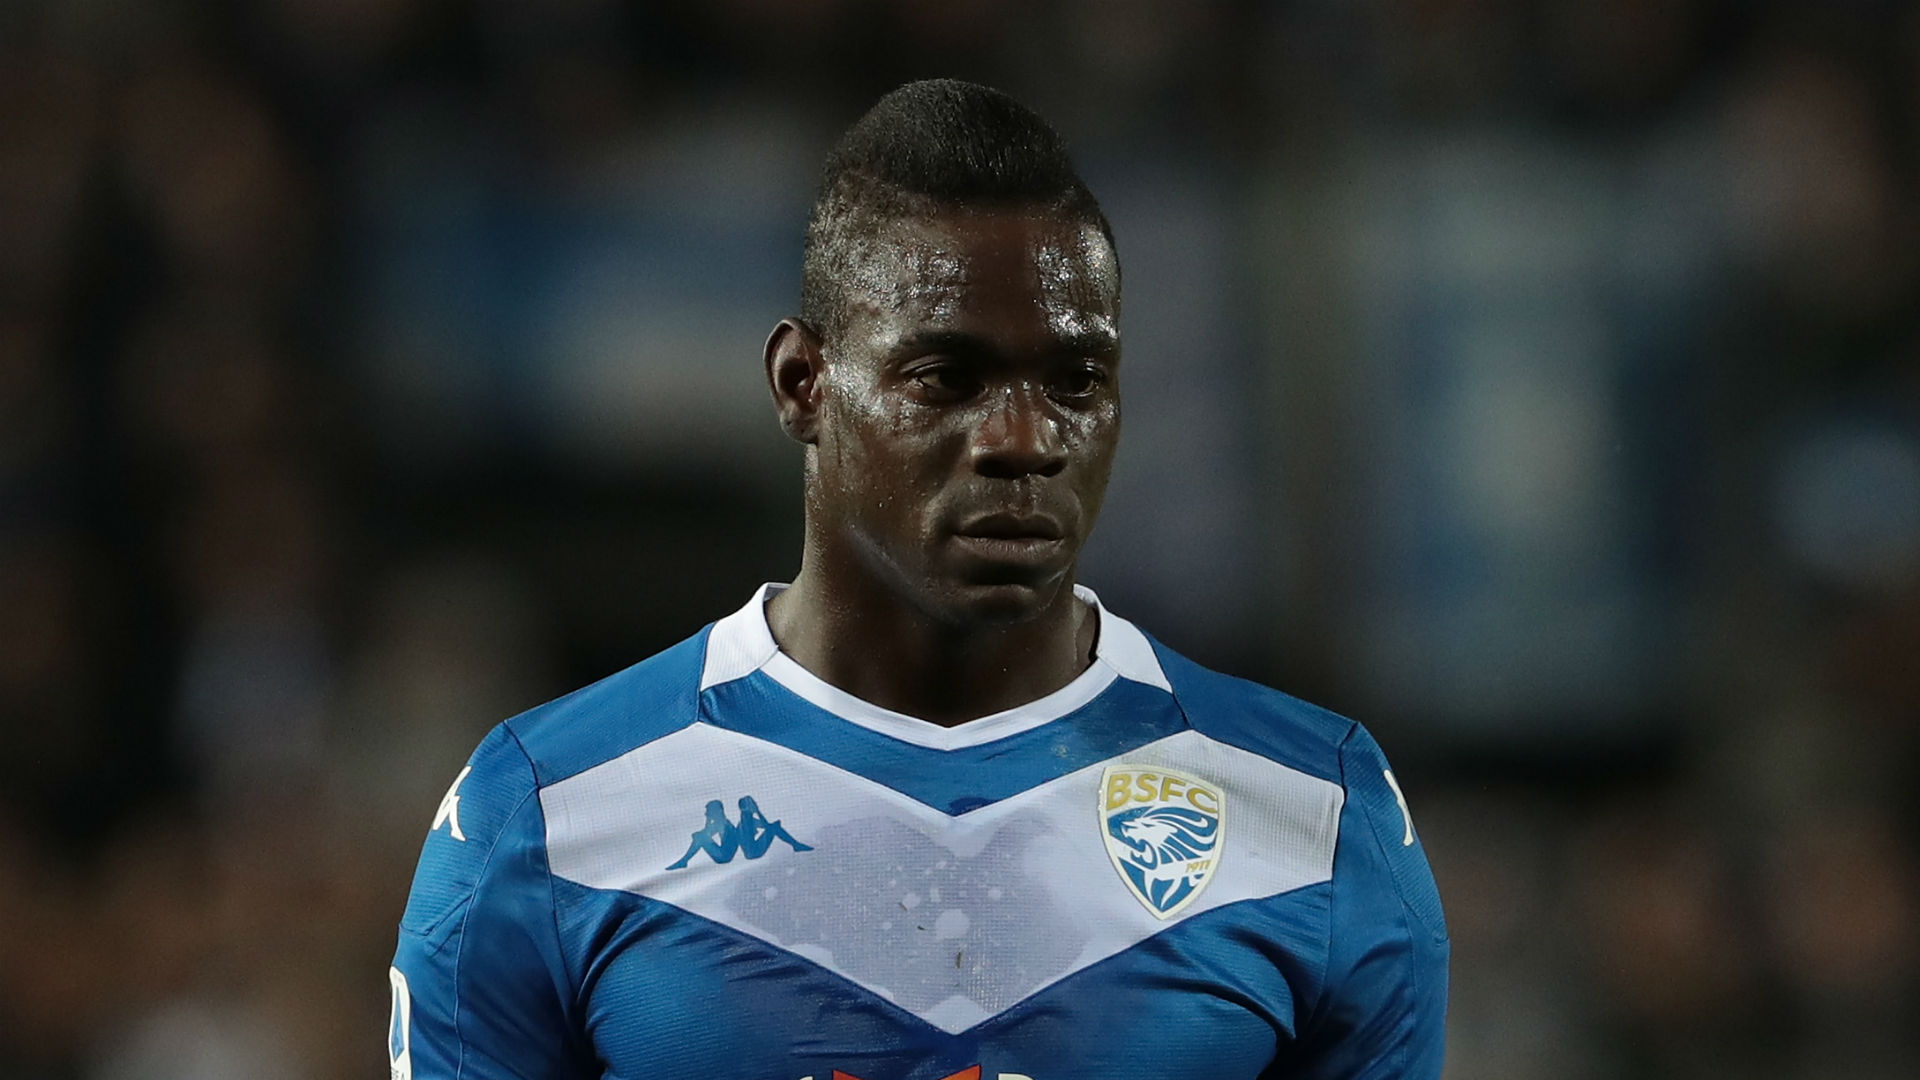 Balotelli urged to 'help himself' after training-ground row sees striker dropped